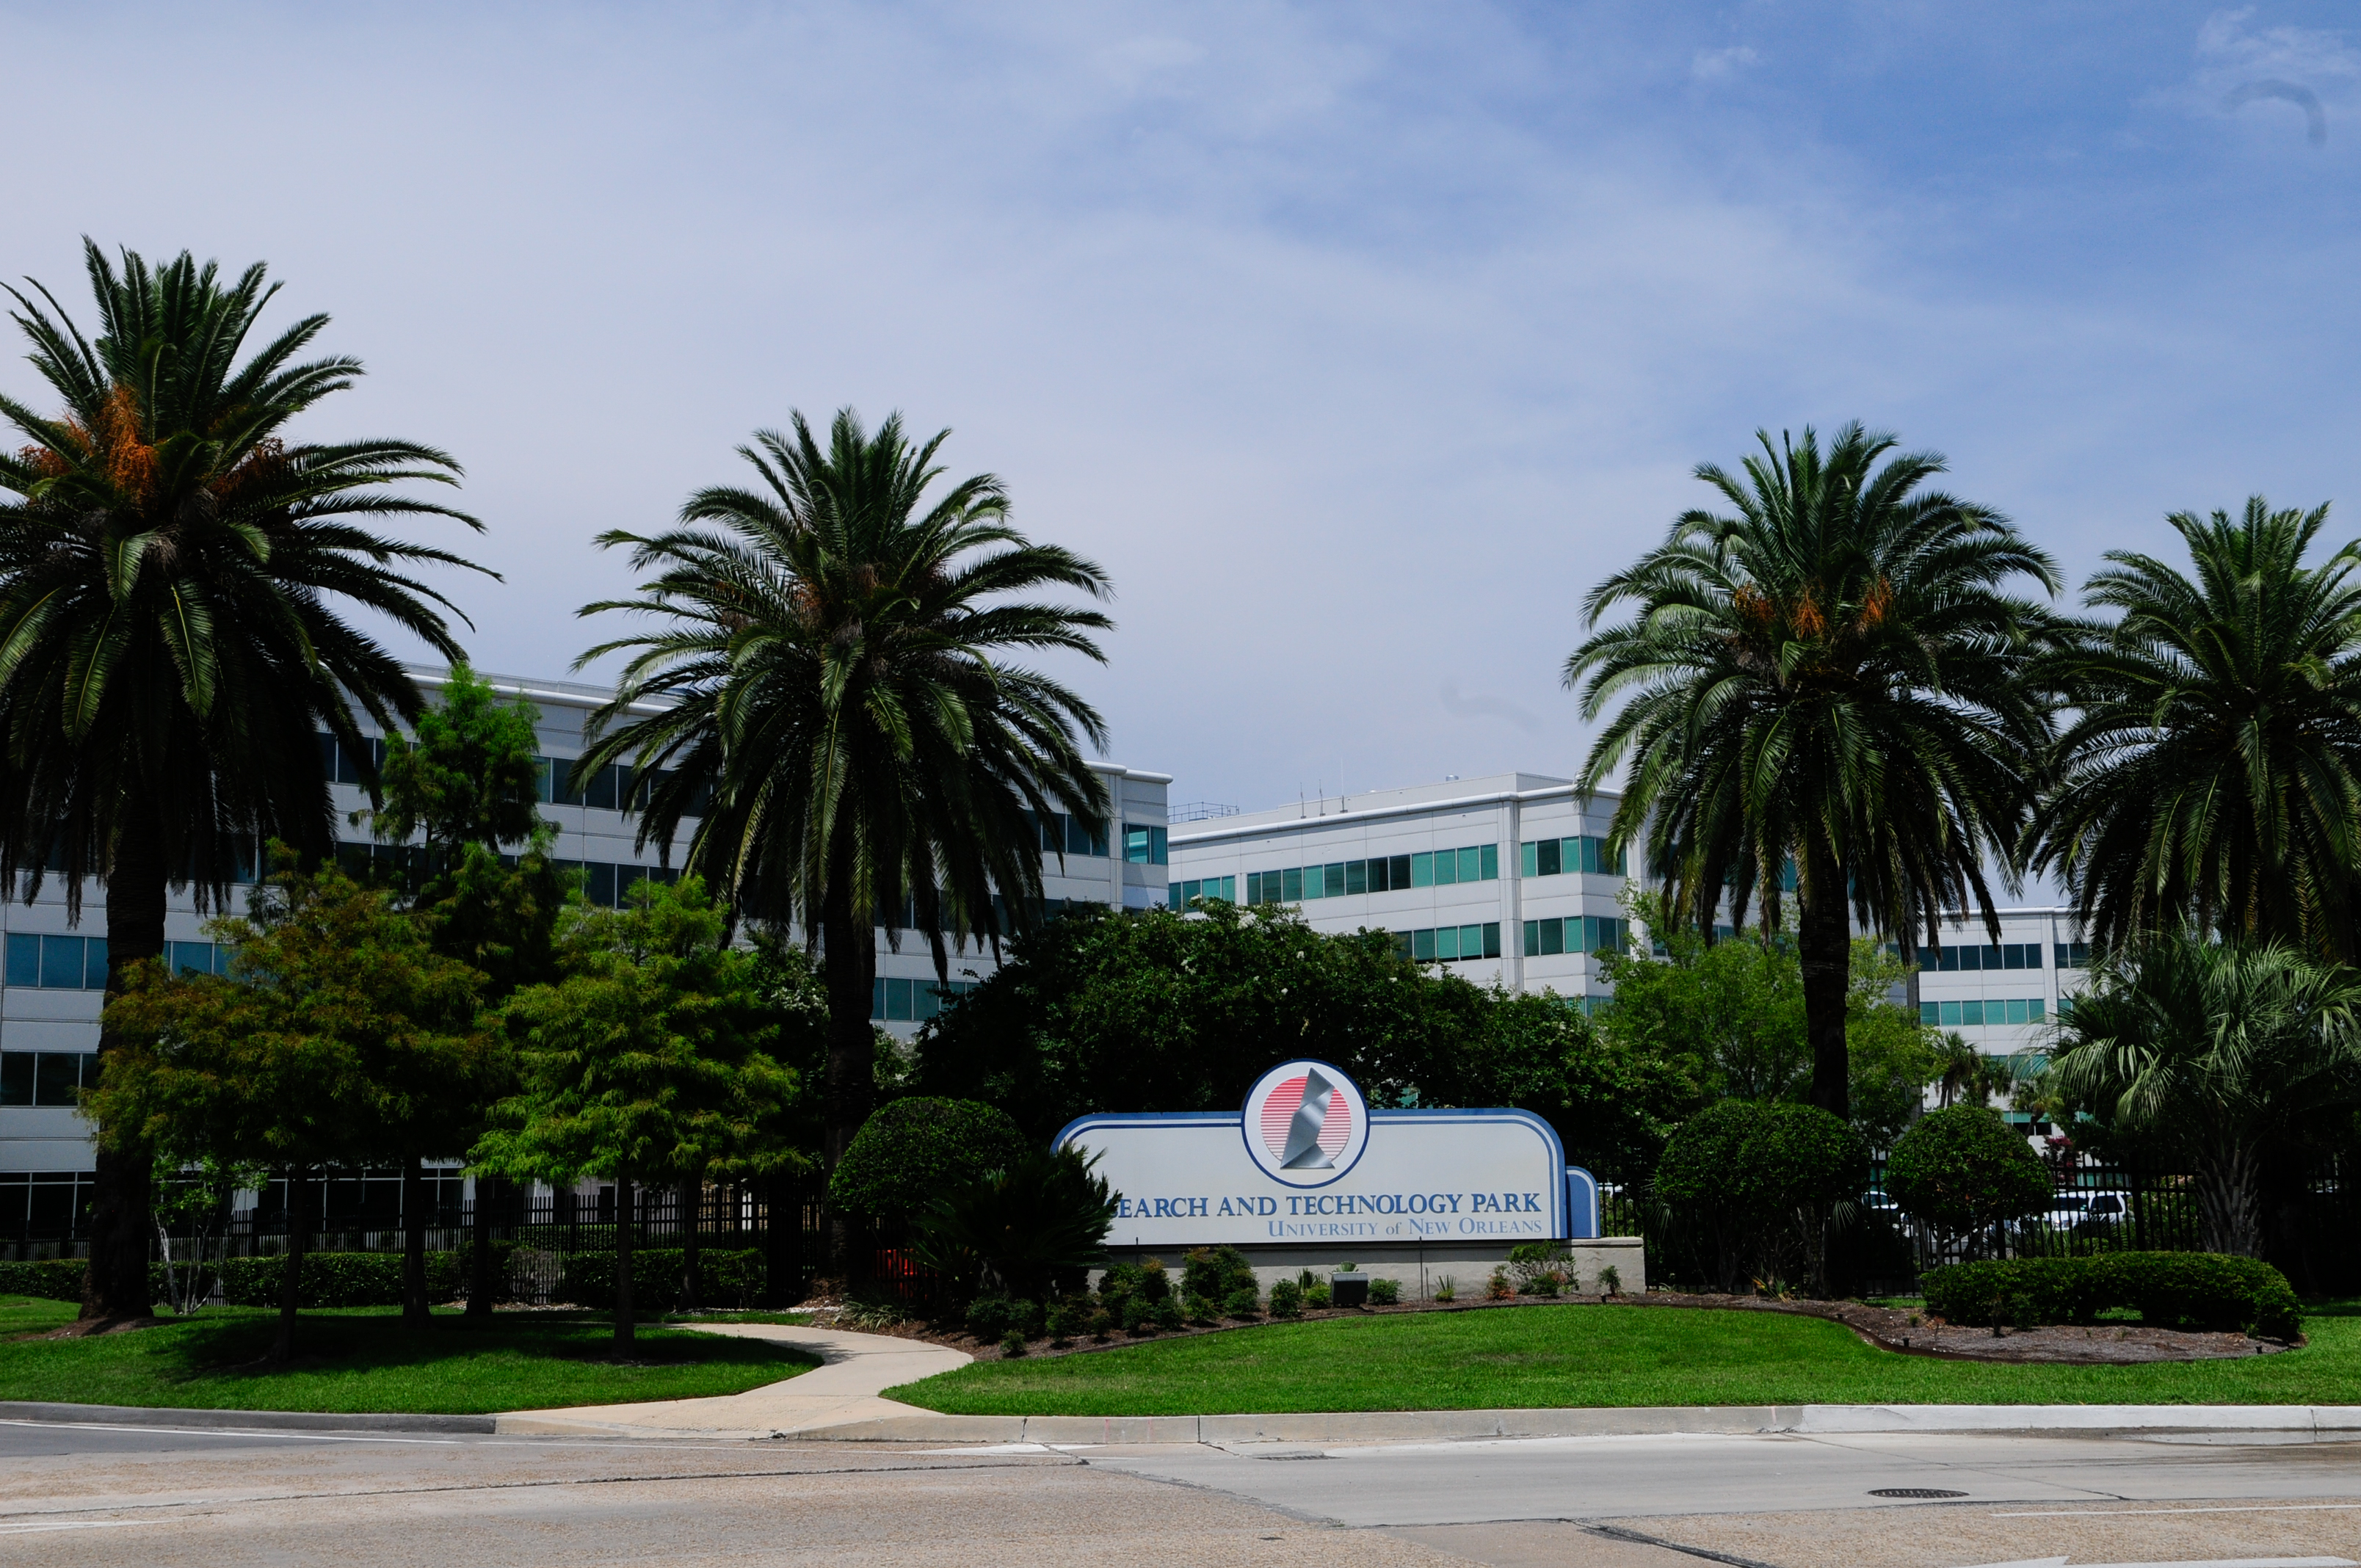 New Photos The University of New Orleans